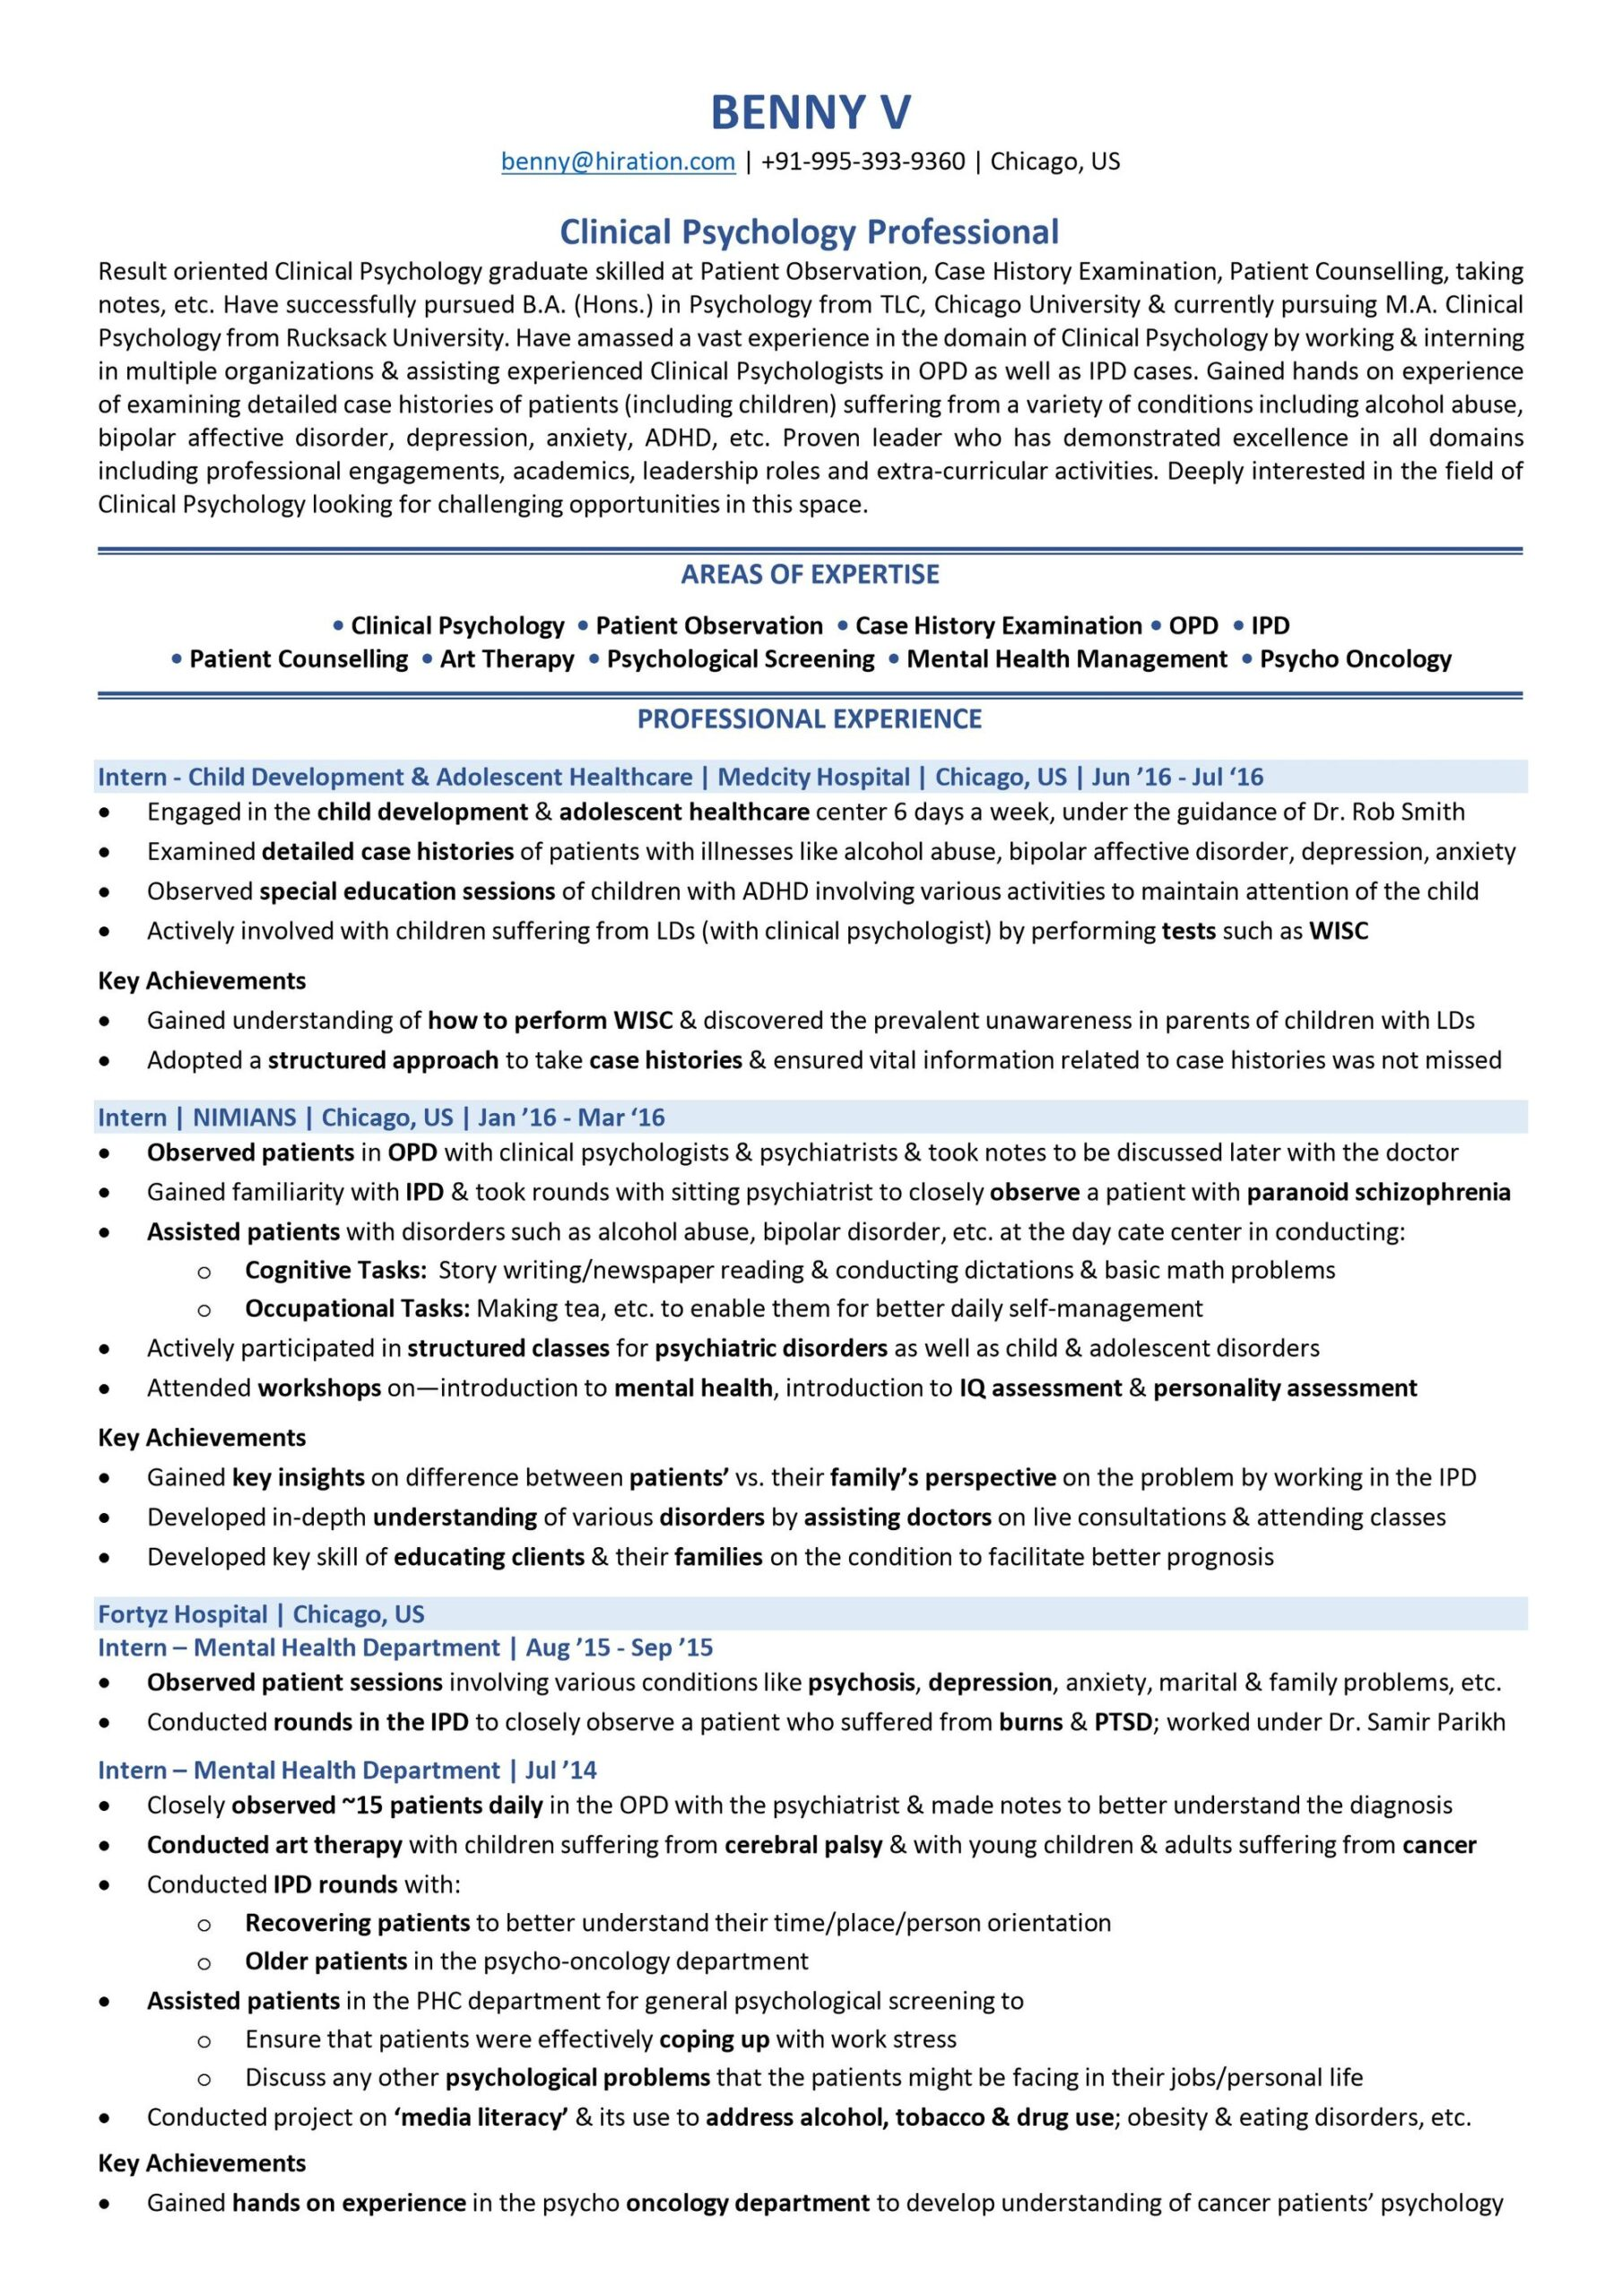 scholarship resume guide with examples samples college template format for front office Resume College Scholarship Resume